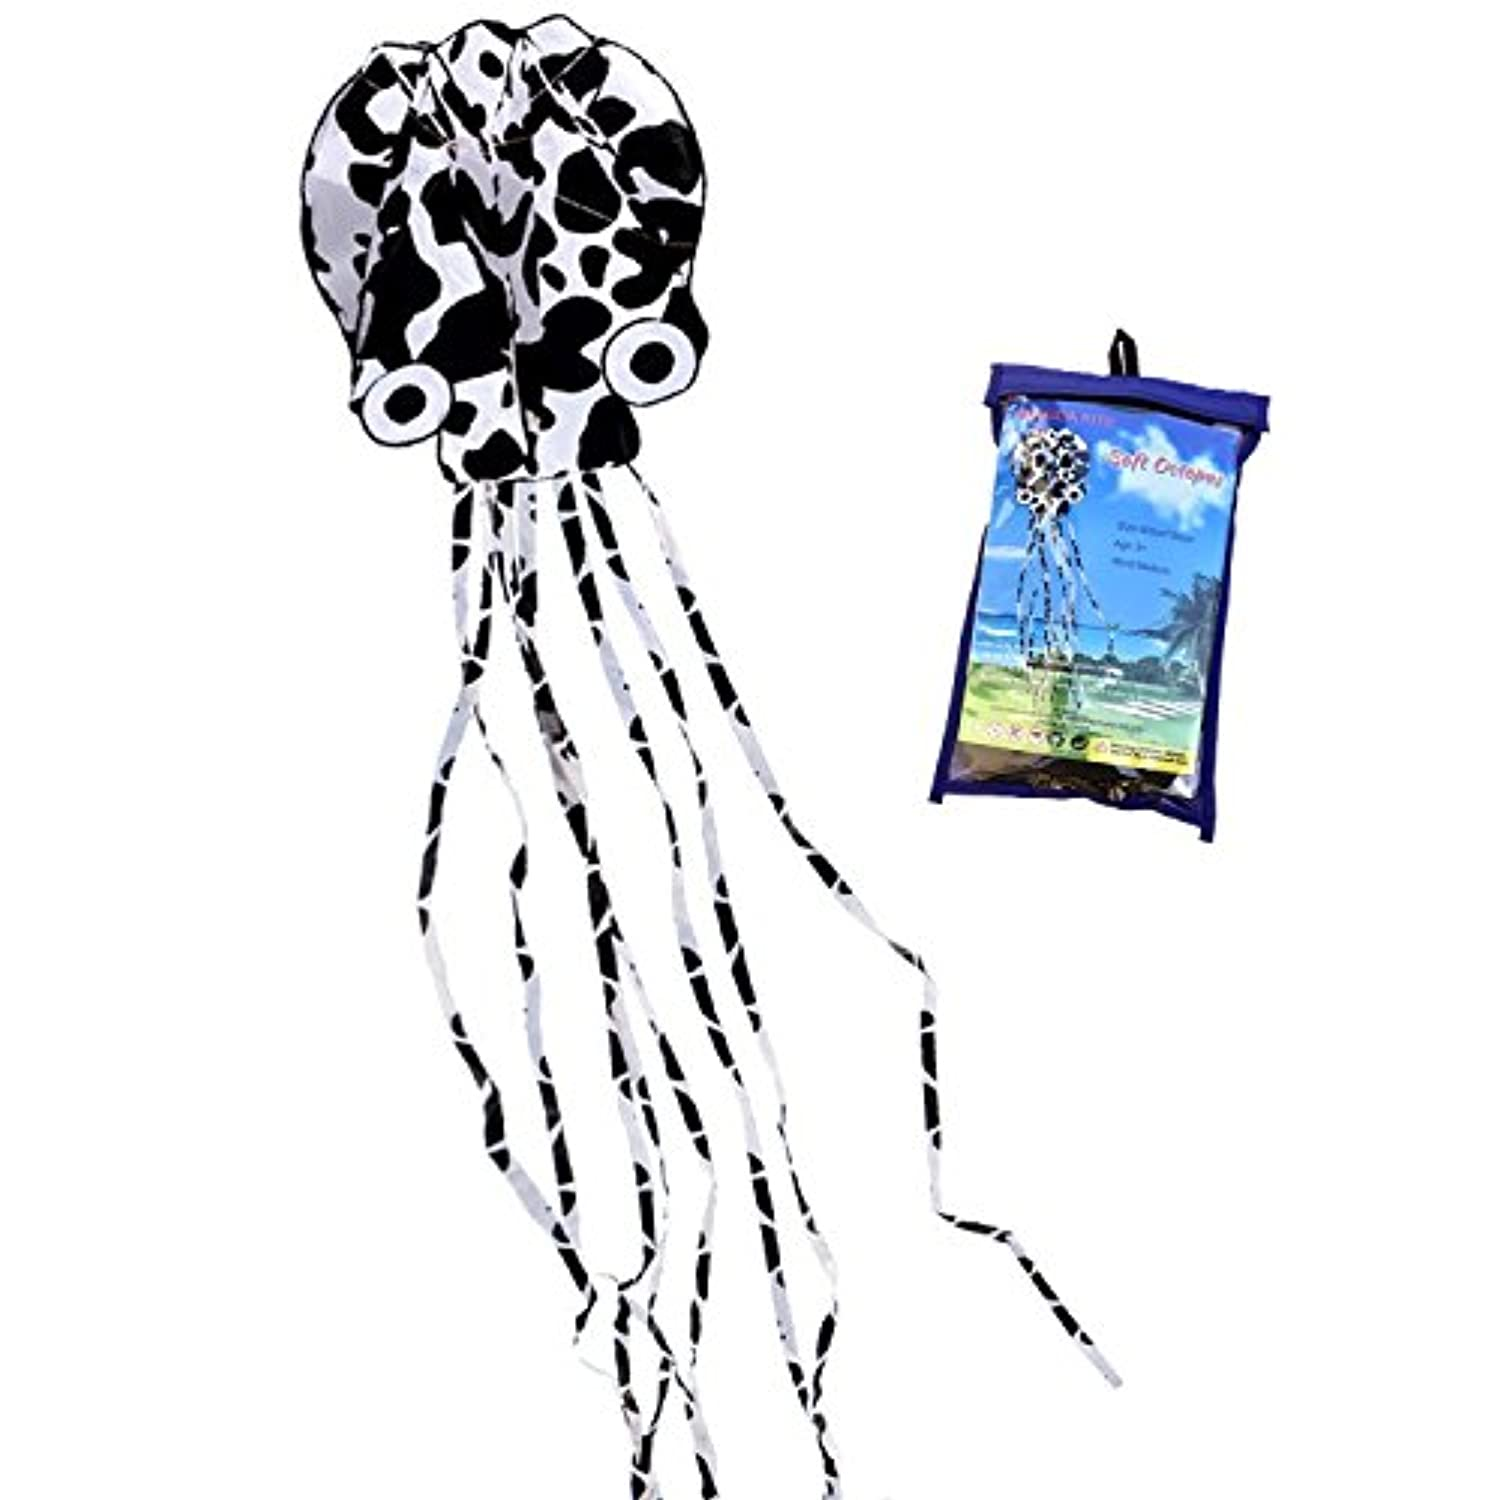 HENGDA kite-beautiful Large Easy Flyer Kite for Kids – Red Mollusc octopus-it 's Big 。31インチWide with Long Tail 157インチlong-perfectのビーチで公園またはHengda Kite